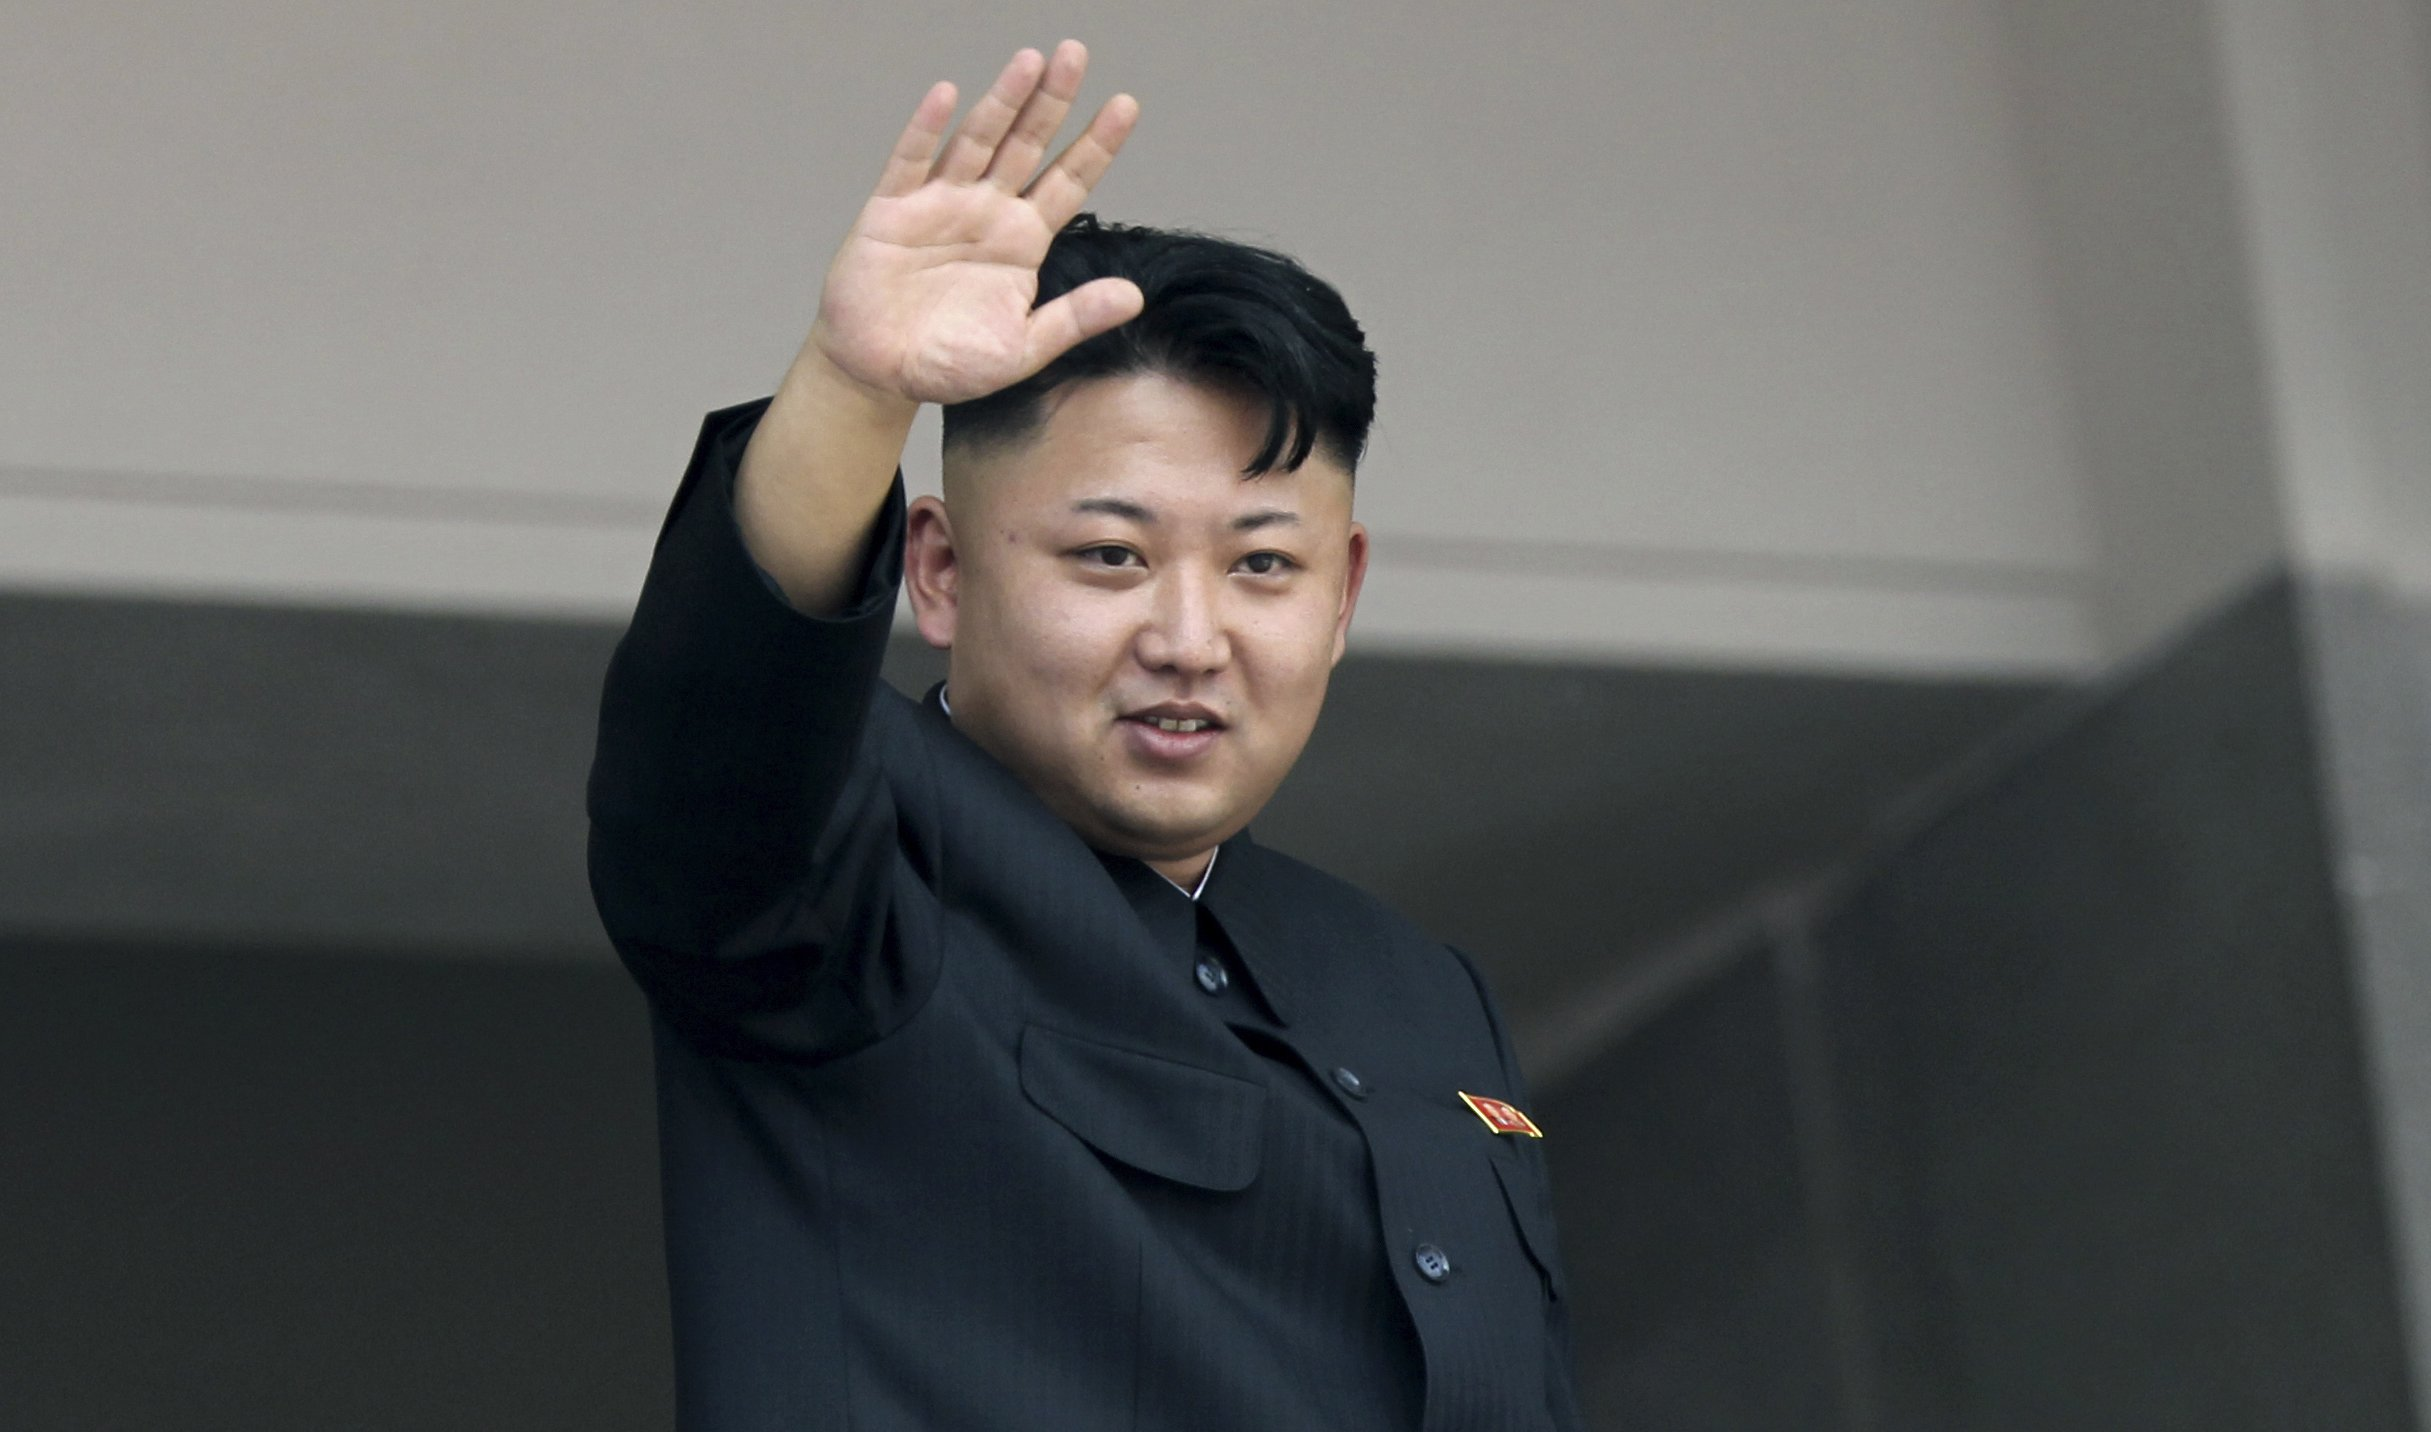 Kim Jong Un waves to spectators and participants of a mass military parade celebrating the 60th anniversary of the Korean War armistice in Pyongyang on July 27, 2013.